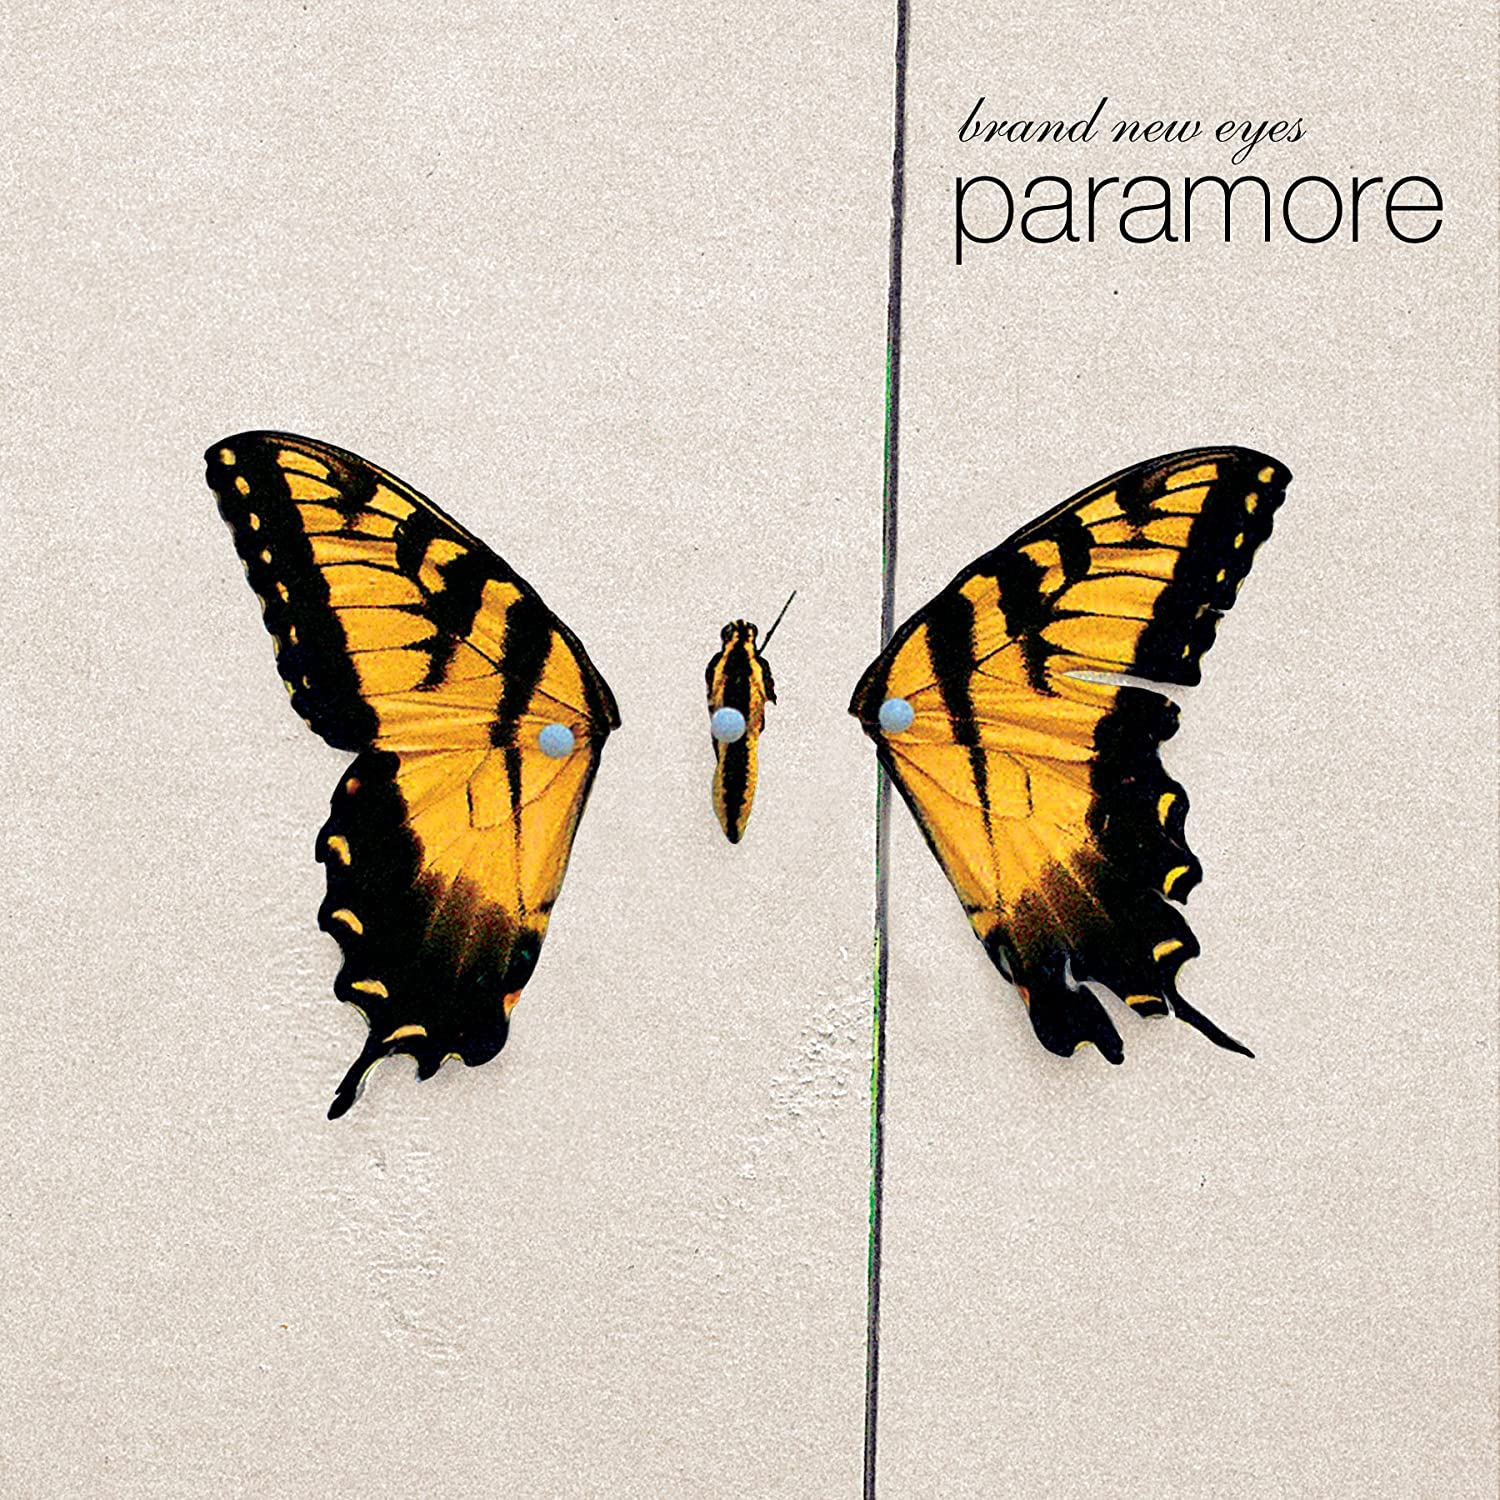 Paramore - brand new eyes - Amazon.com Music